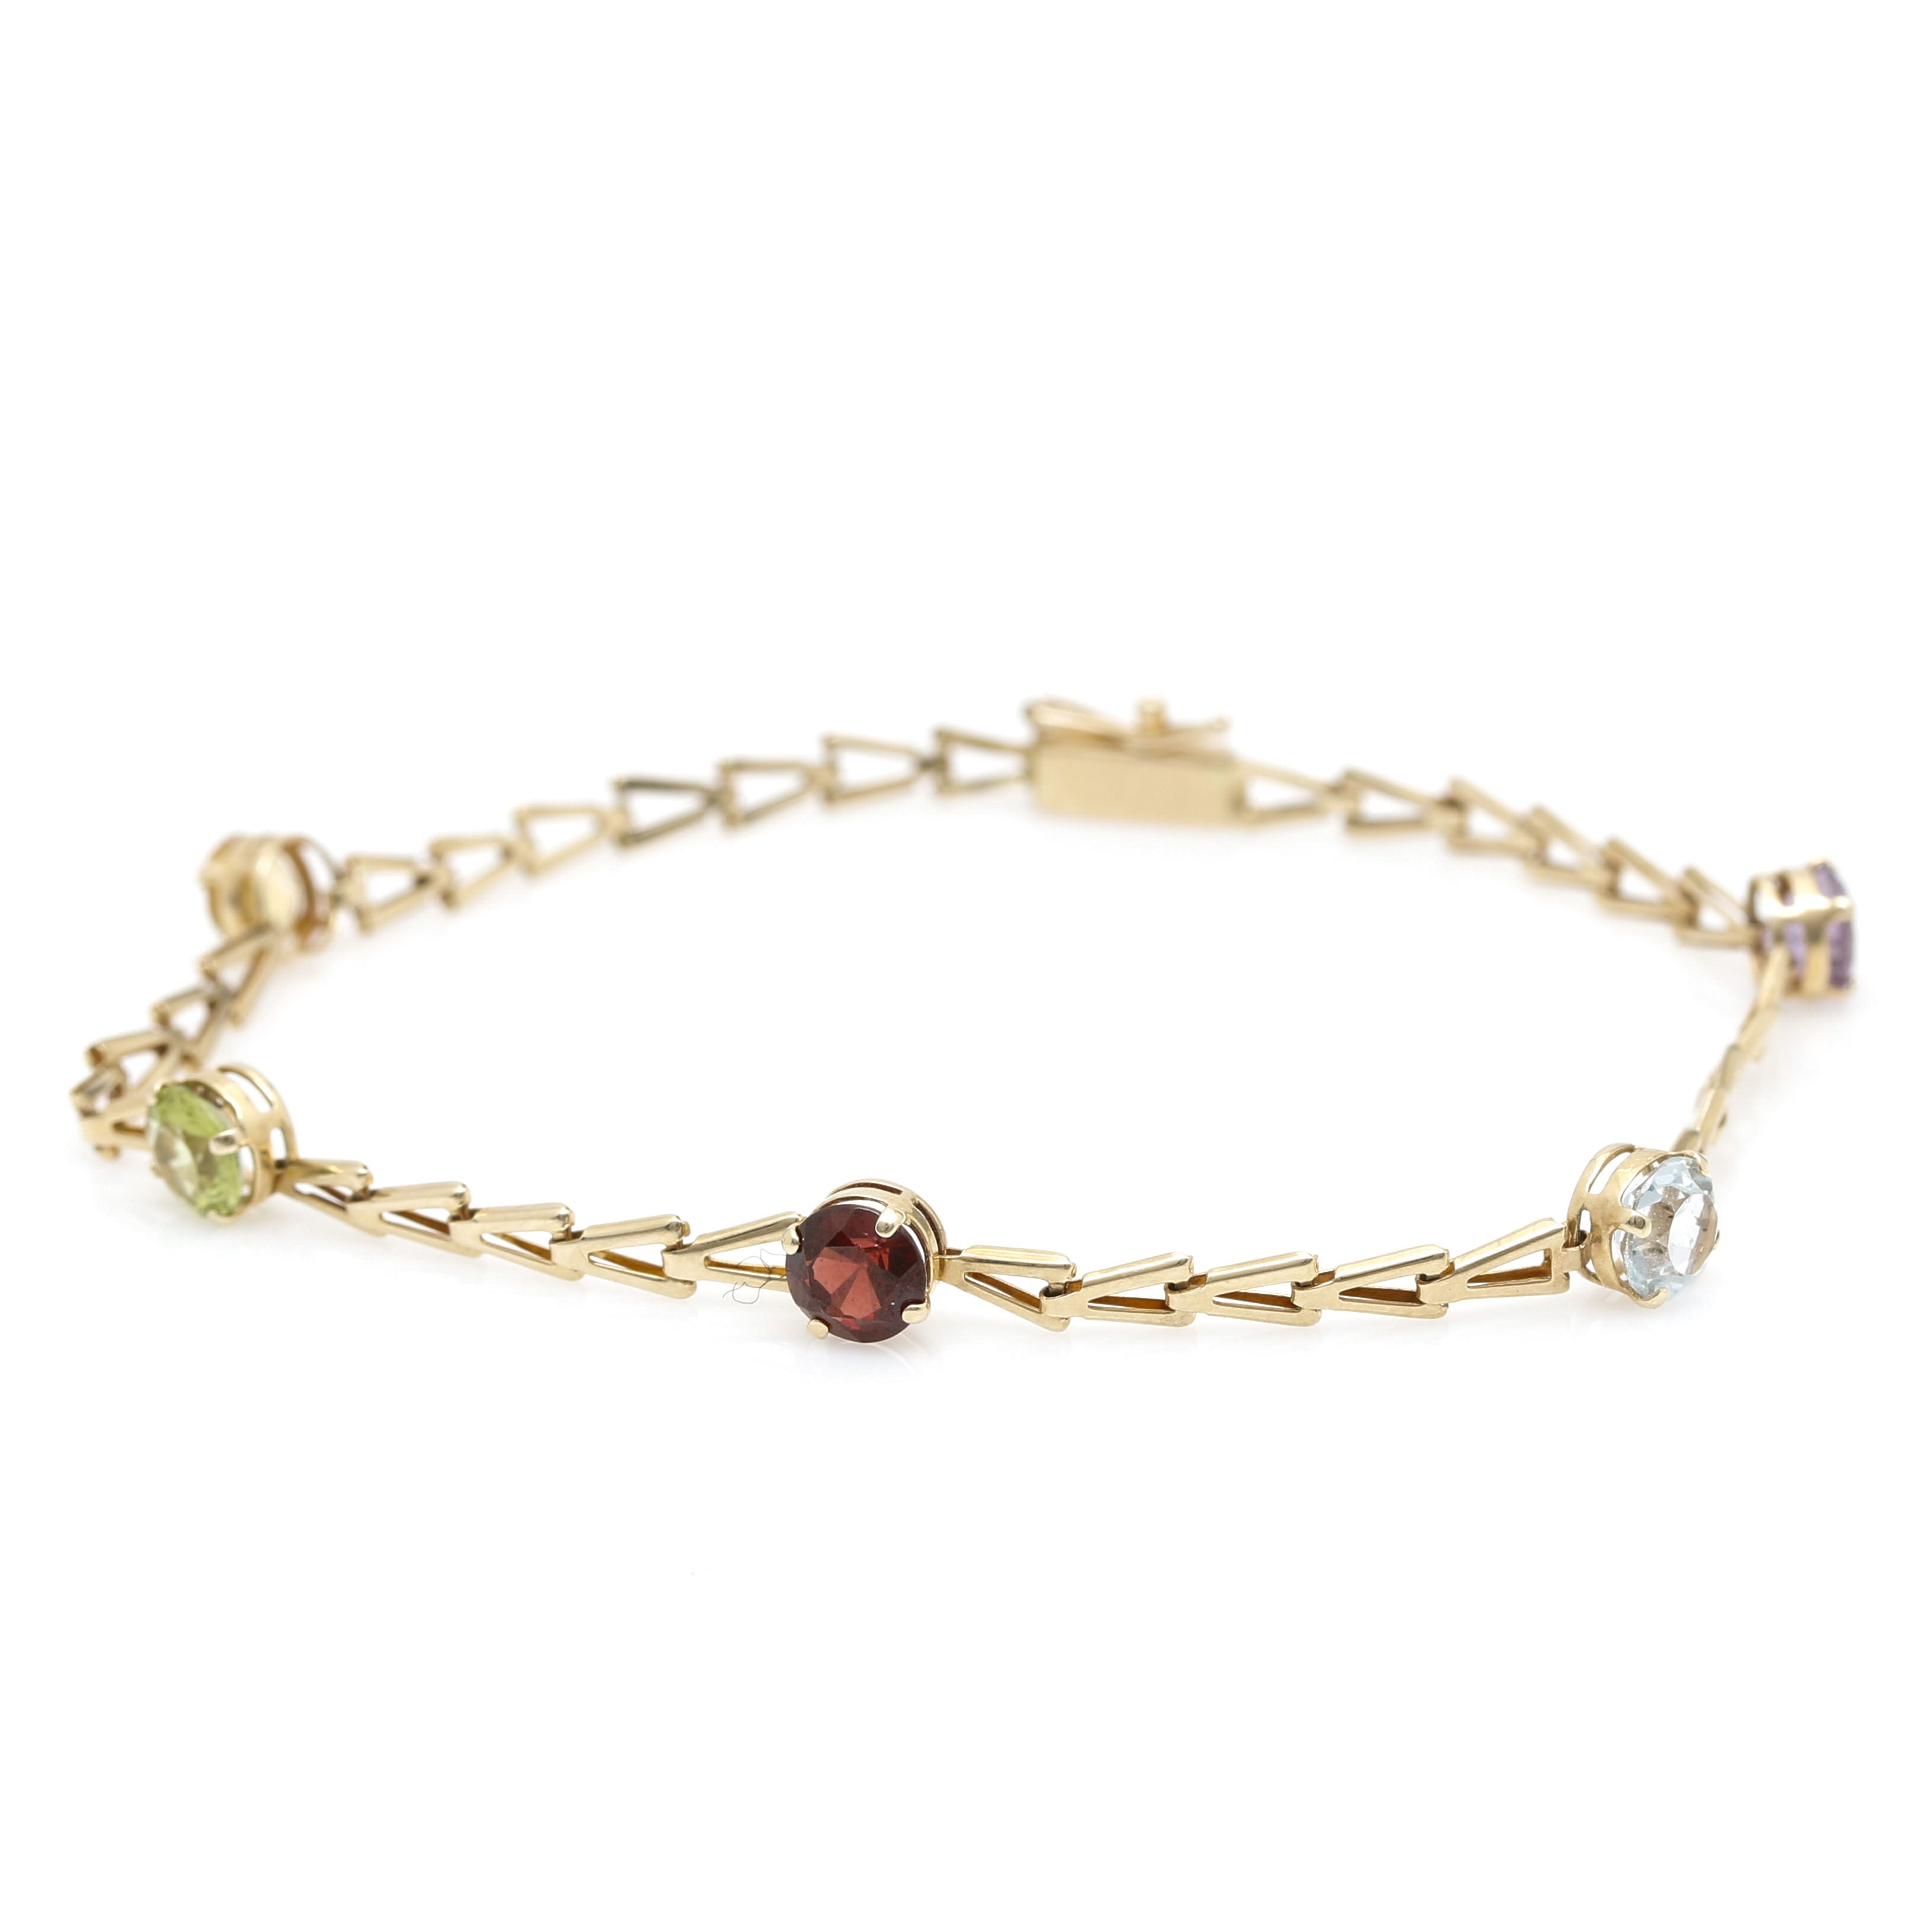 14K Yellow Gold Multi-Gemstone Station Bracelet